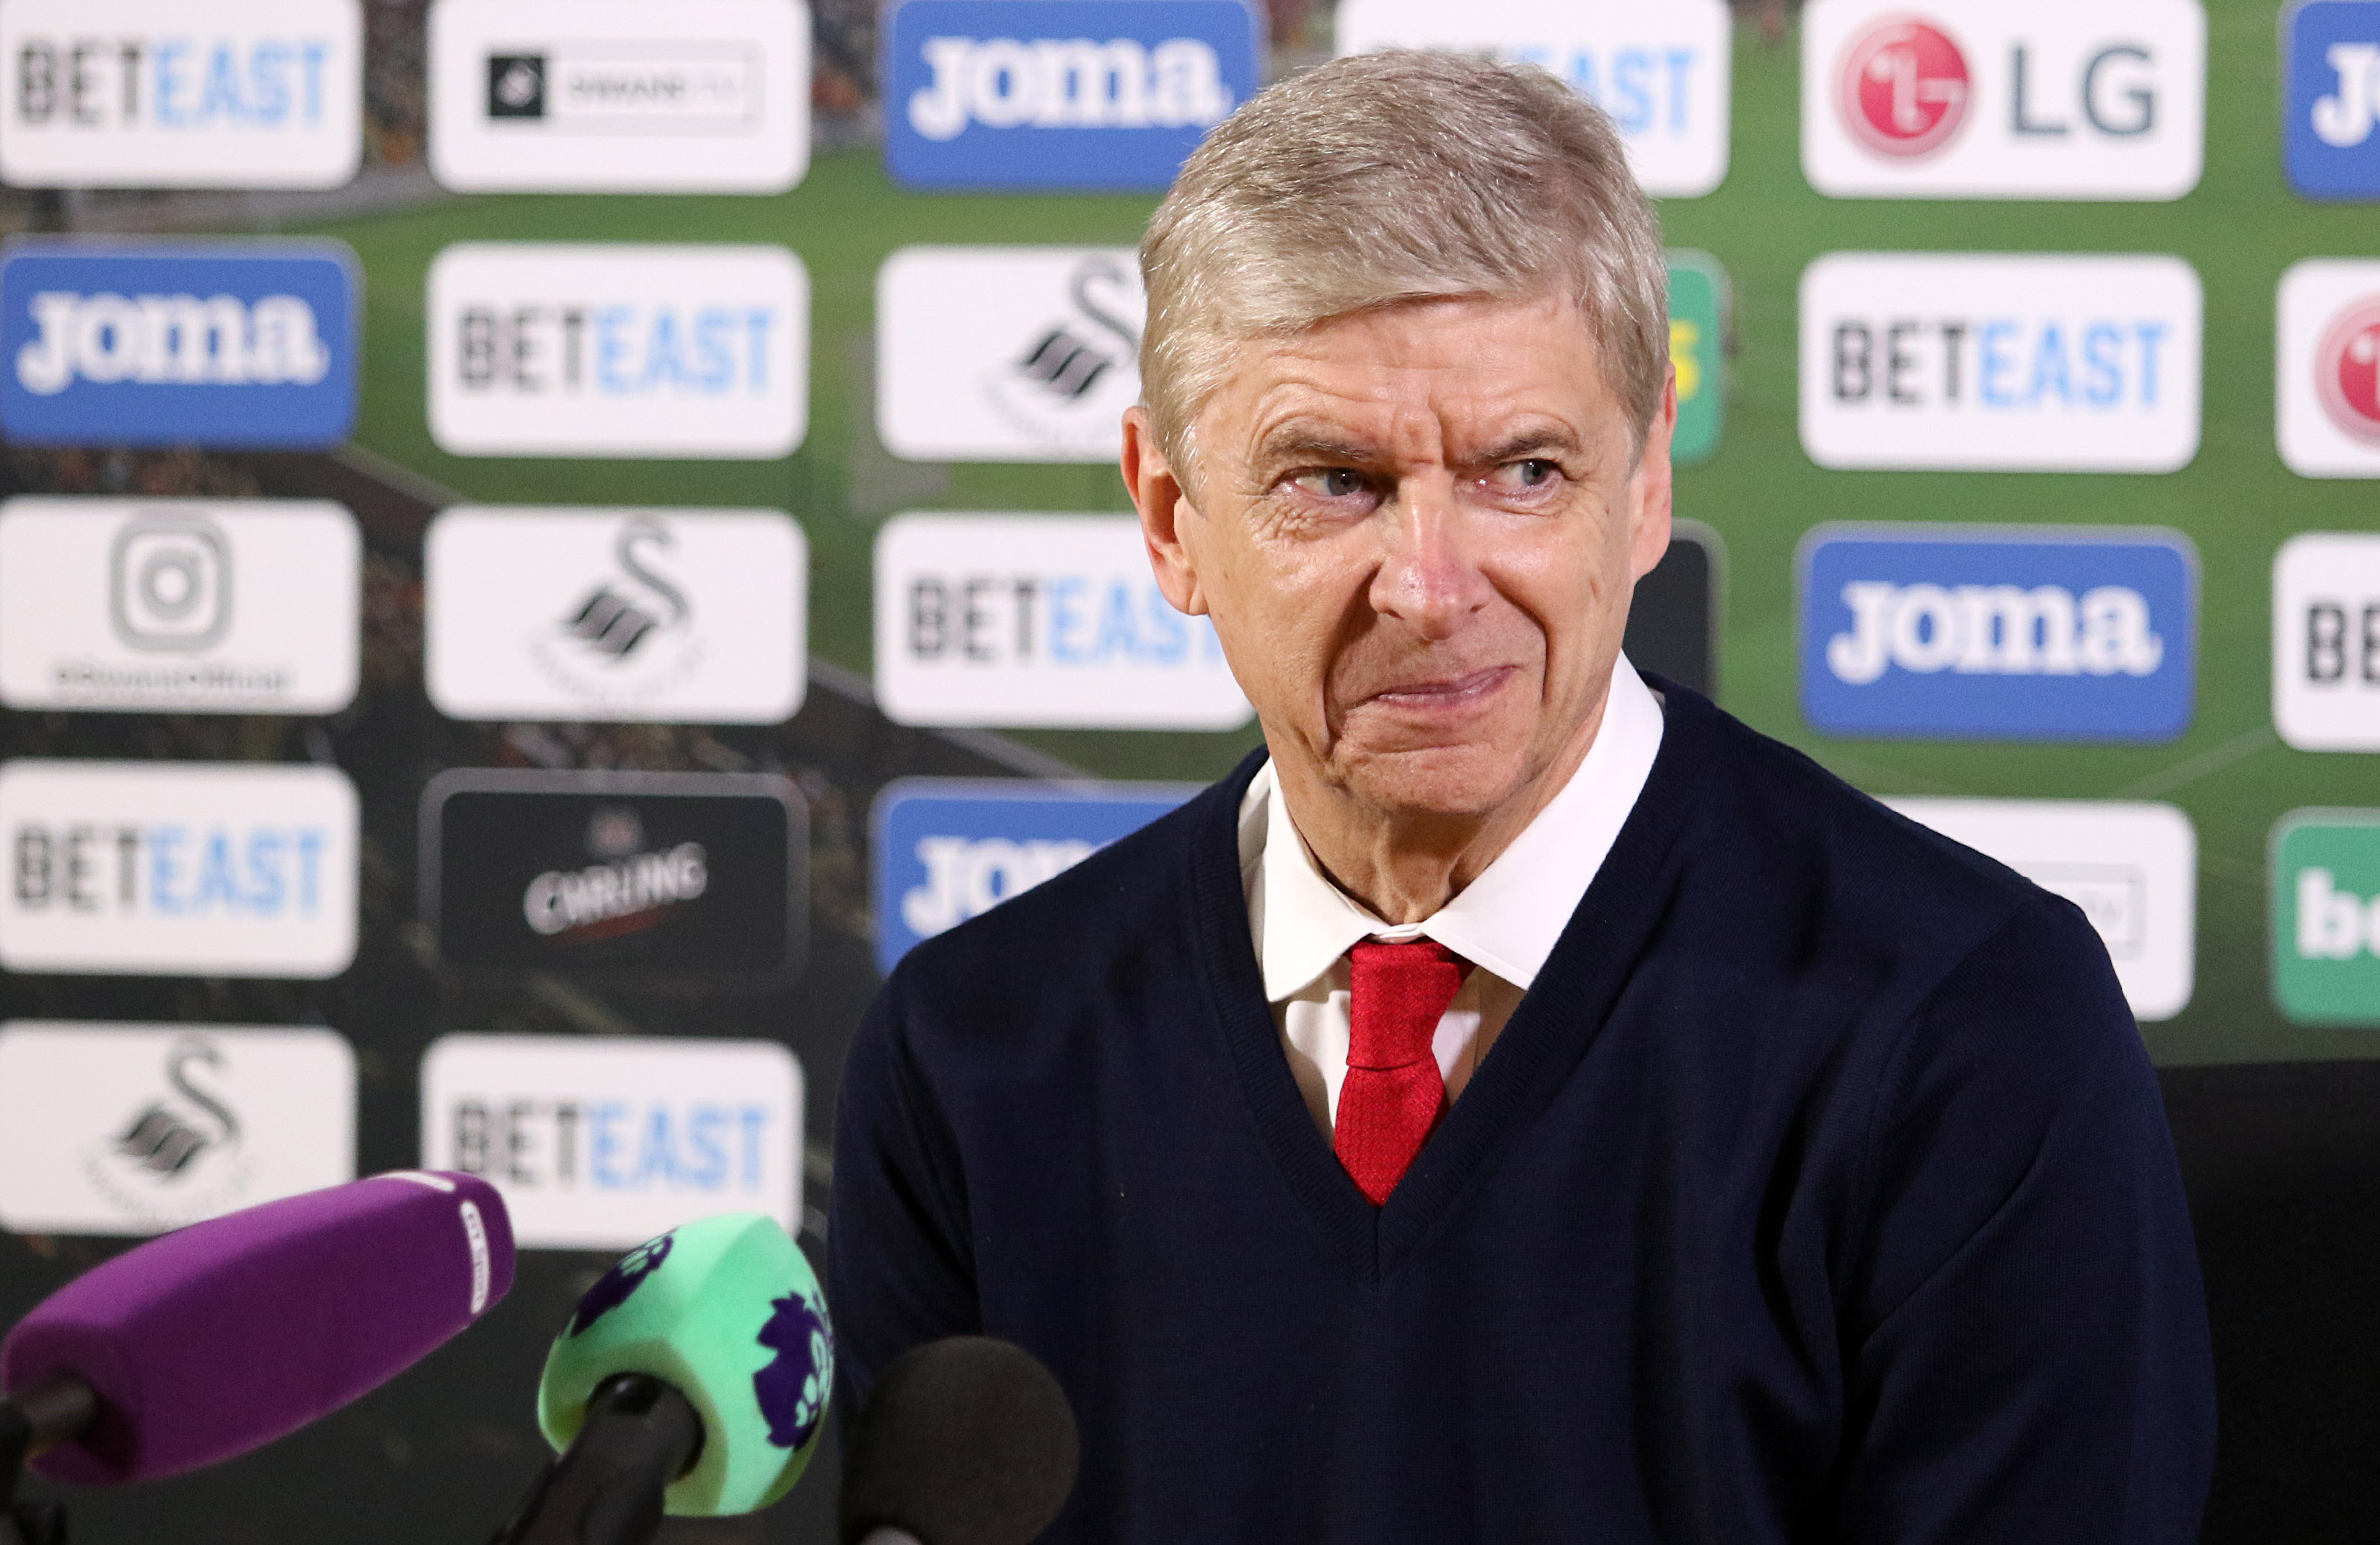 SWANSEA, WALES - JANUARY 14: Arsenal Manager Arsène Wenger during the post match press conference after the Premier League match between Swansea City and Arsenal at The Liberty Stadium on January 14, 2017 in Swansea, Wales. (Photo by Athena Pictures/Getty Images)